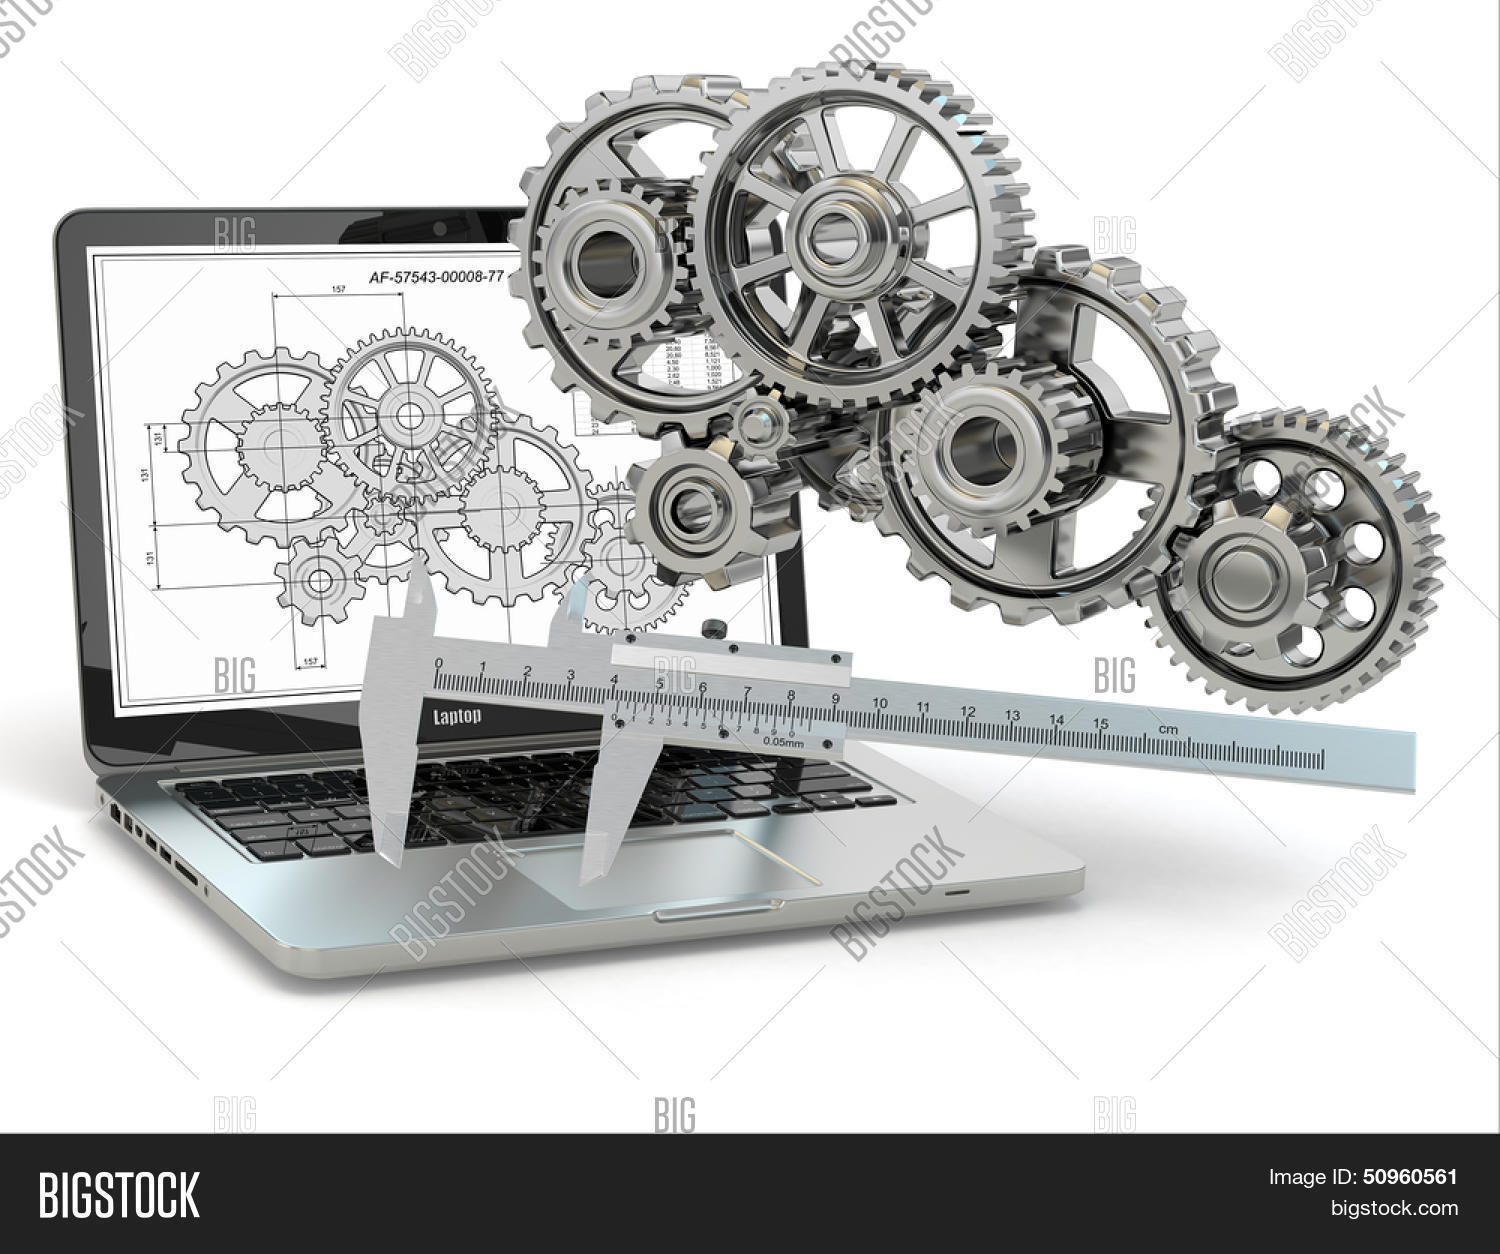 3d,blueprint,caliper,computer science,concepts,conspiracy,construction,delineation,dengineering,design,drafting,drawing,engineer,equipment,gear,geometry,graphic,ideas,illustration,industry,instrument,internet,invention,laptop,laptop screen,machine,measurement,measuring,paper,part,pattern,pc,pencil,plan,ruler,science,screen,shape,sketch,sketching,symbol,technical,technical drawing,three-dimensional,tool,trammel,work